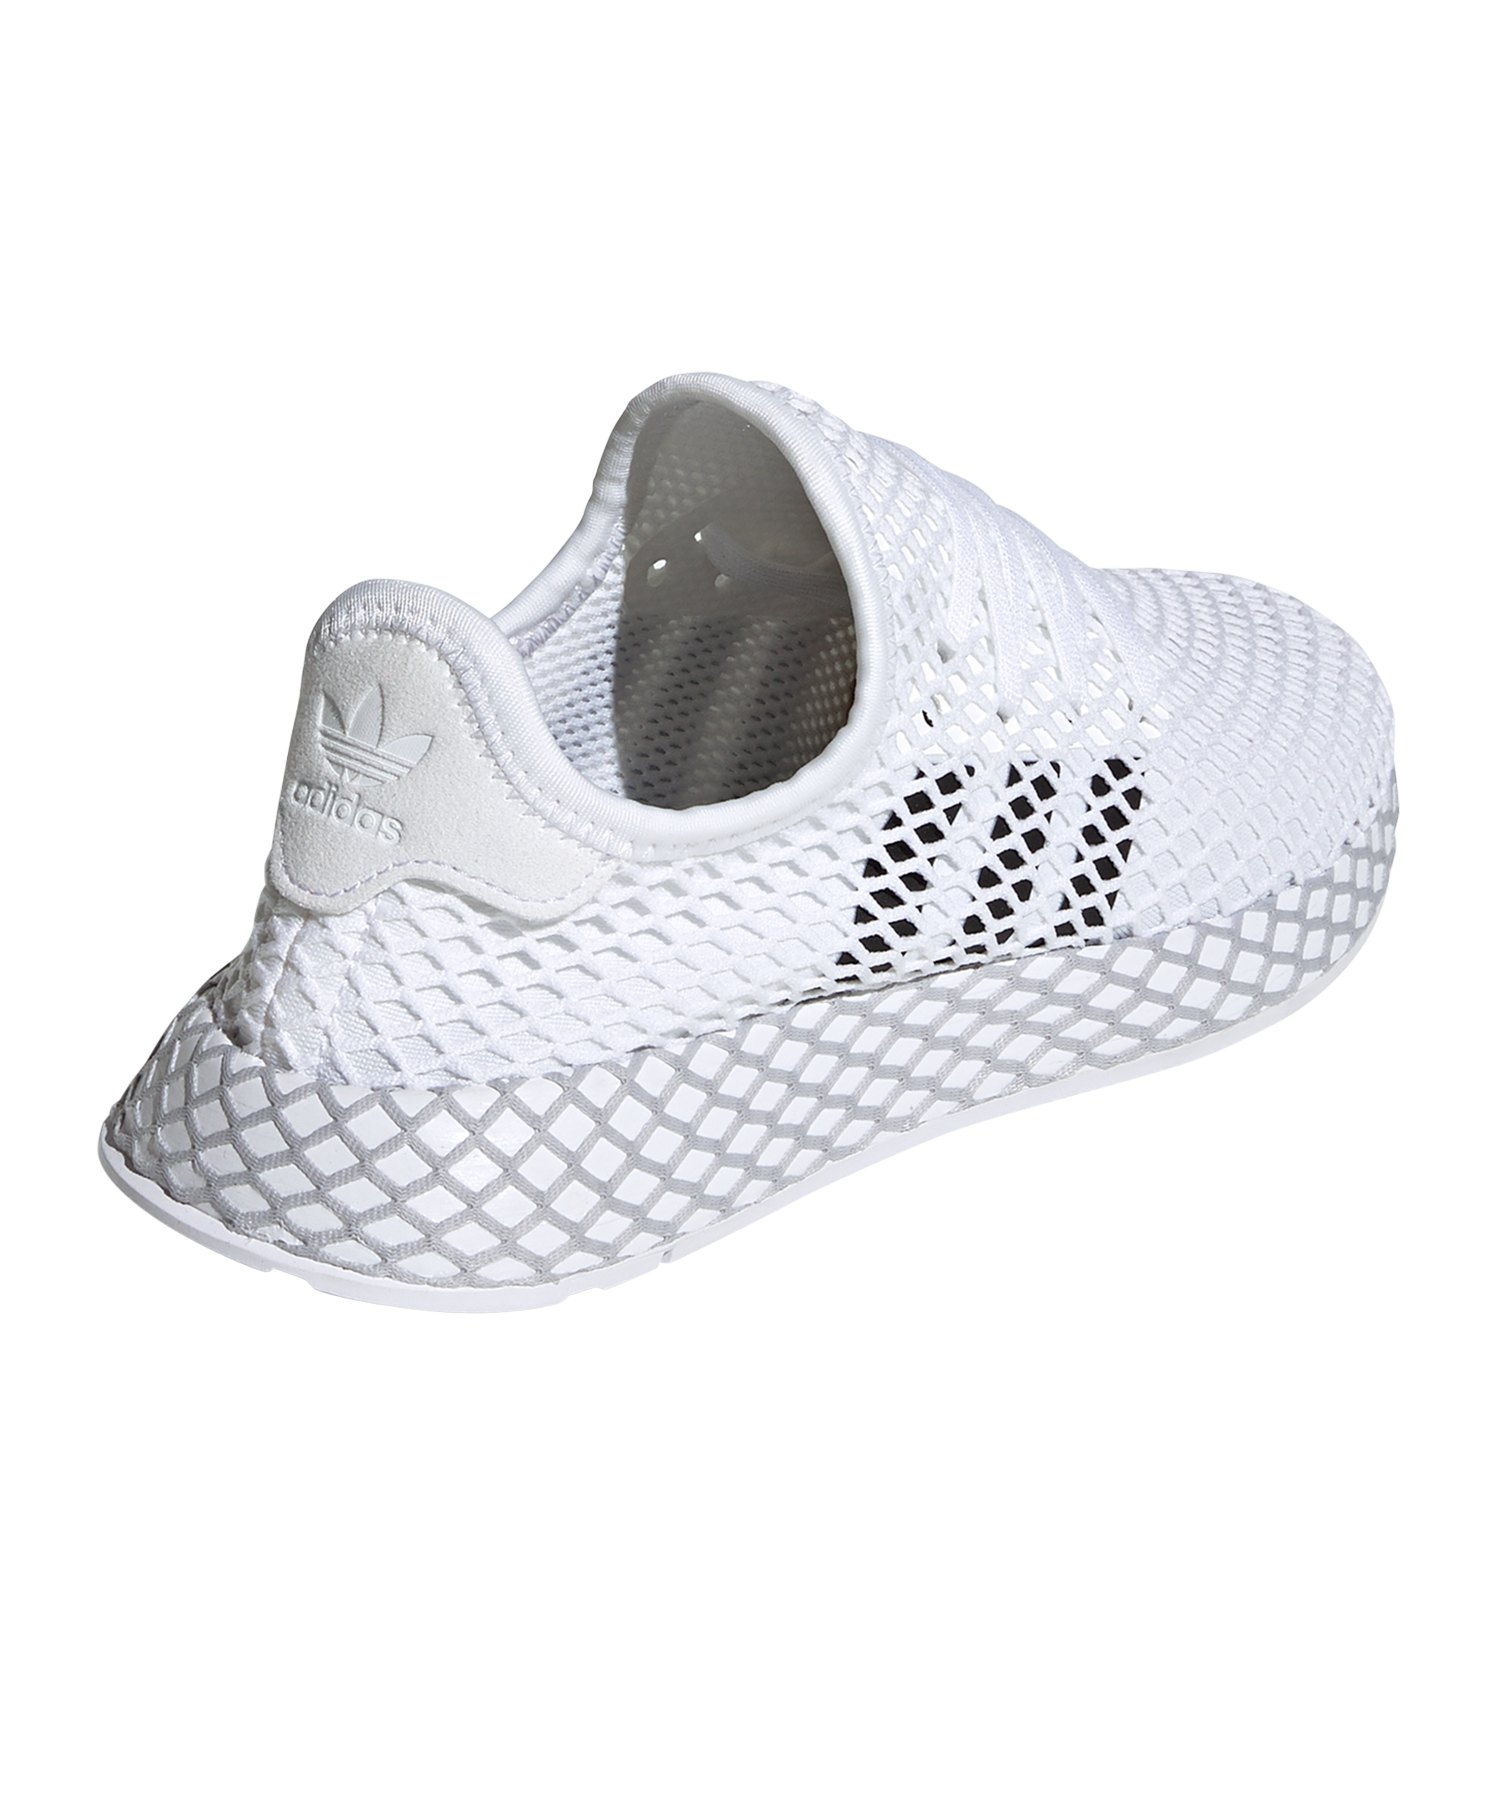 696f3d1fa1764 adidas Originals Deerupt Runner Sneaker Kids Weiss